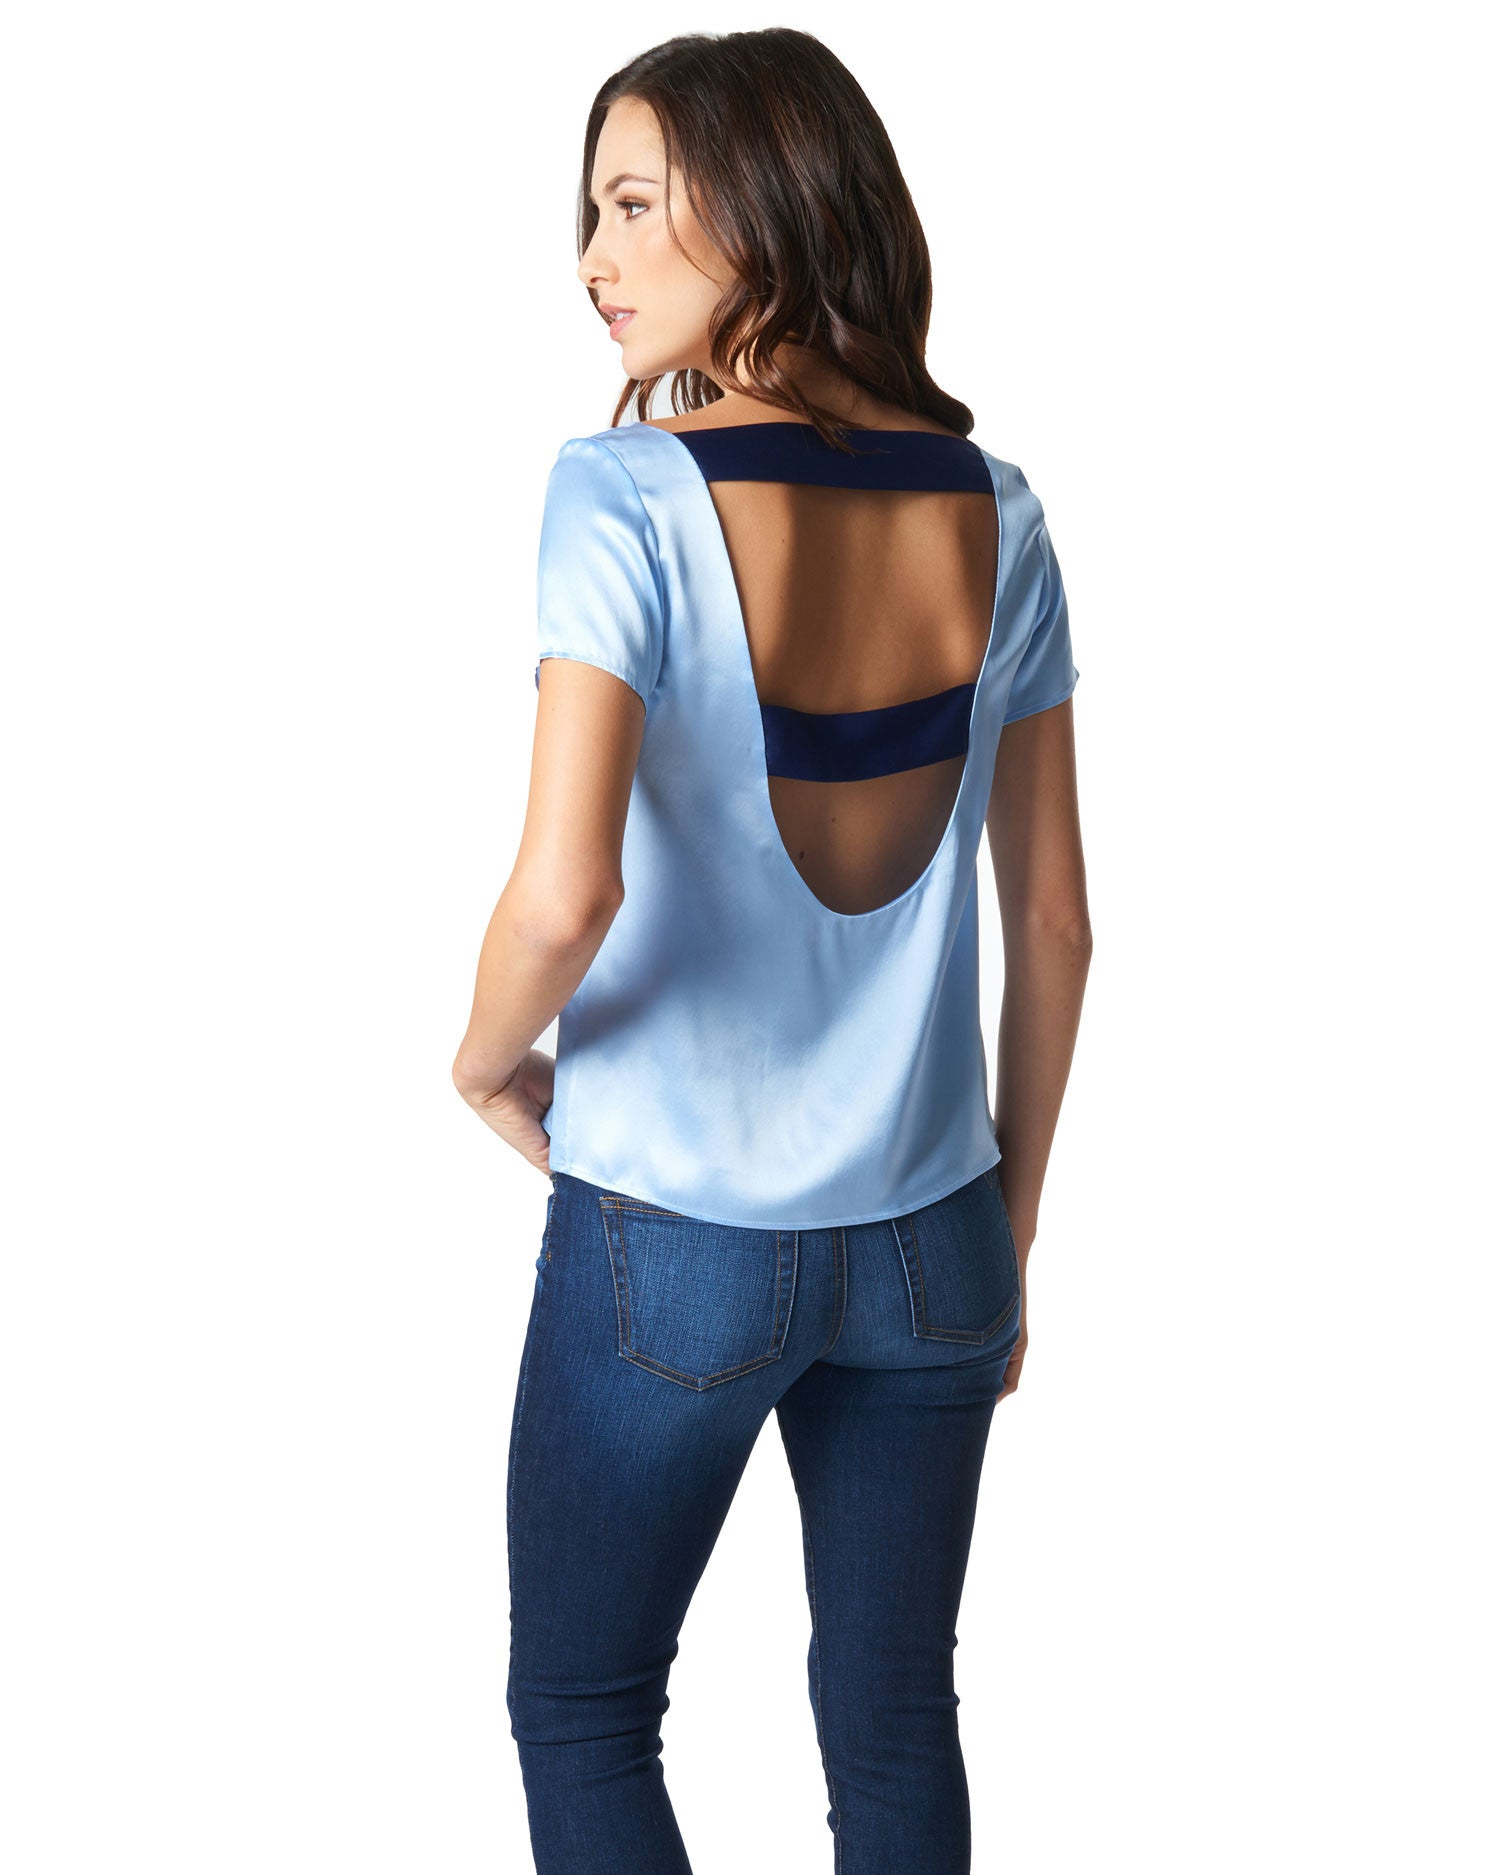 Paige Open Back Top - Demure Blue and Navy